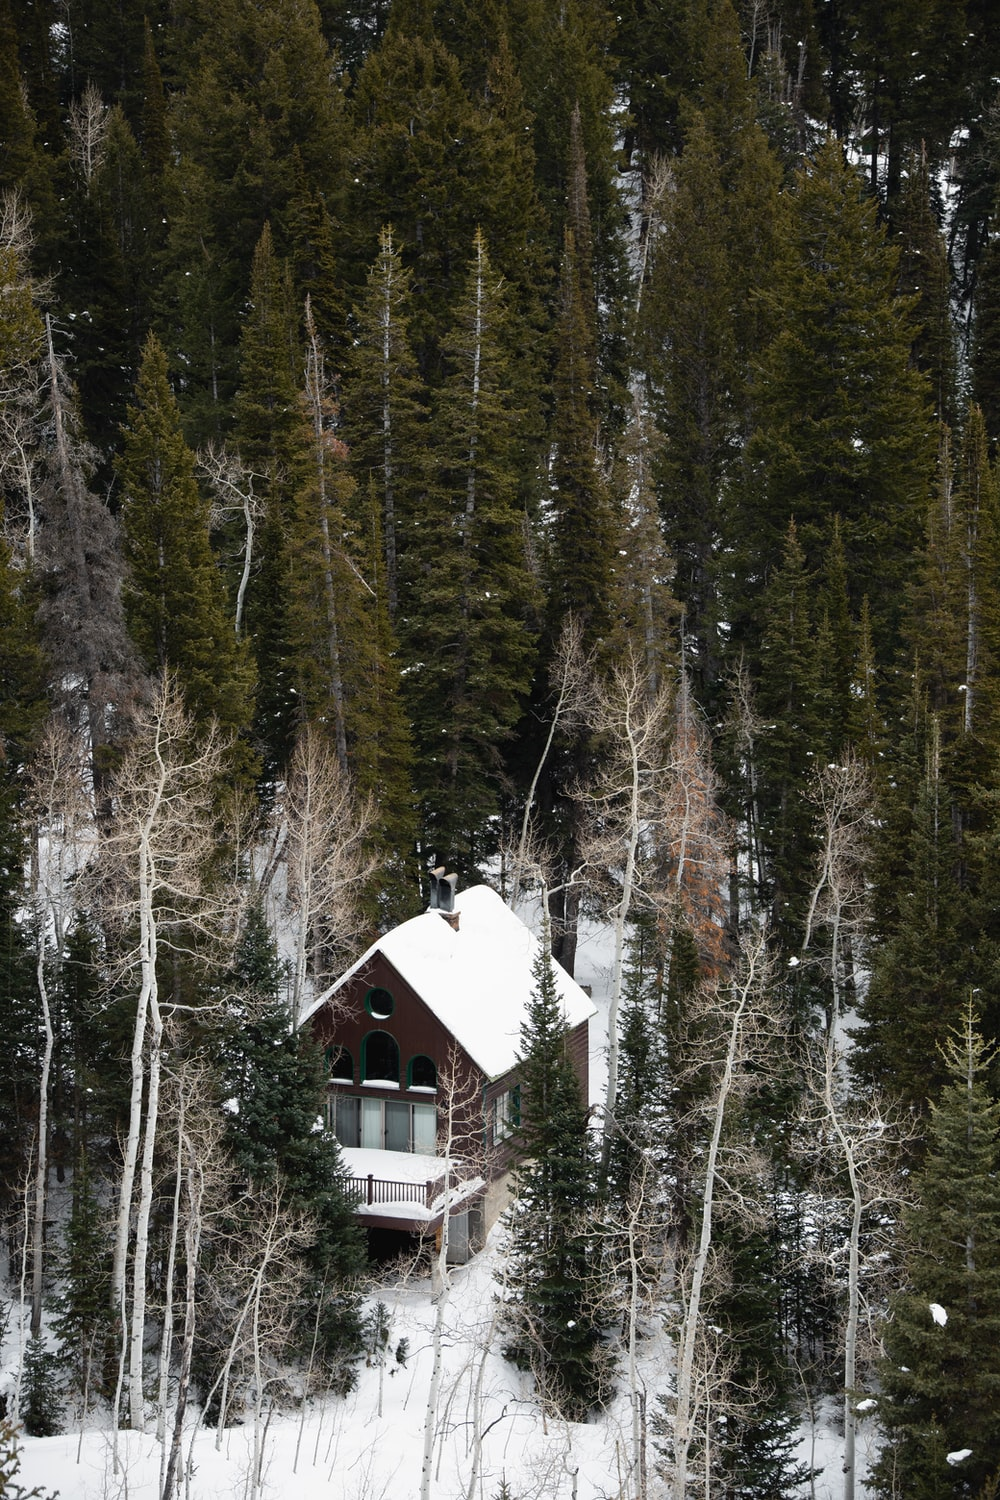 white and brown wooden house in the middle of forest